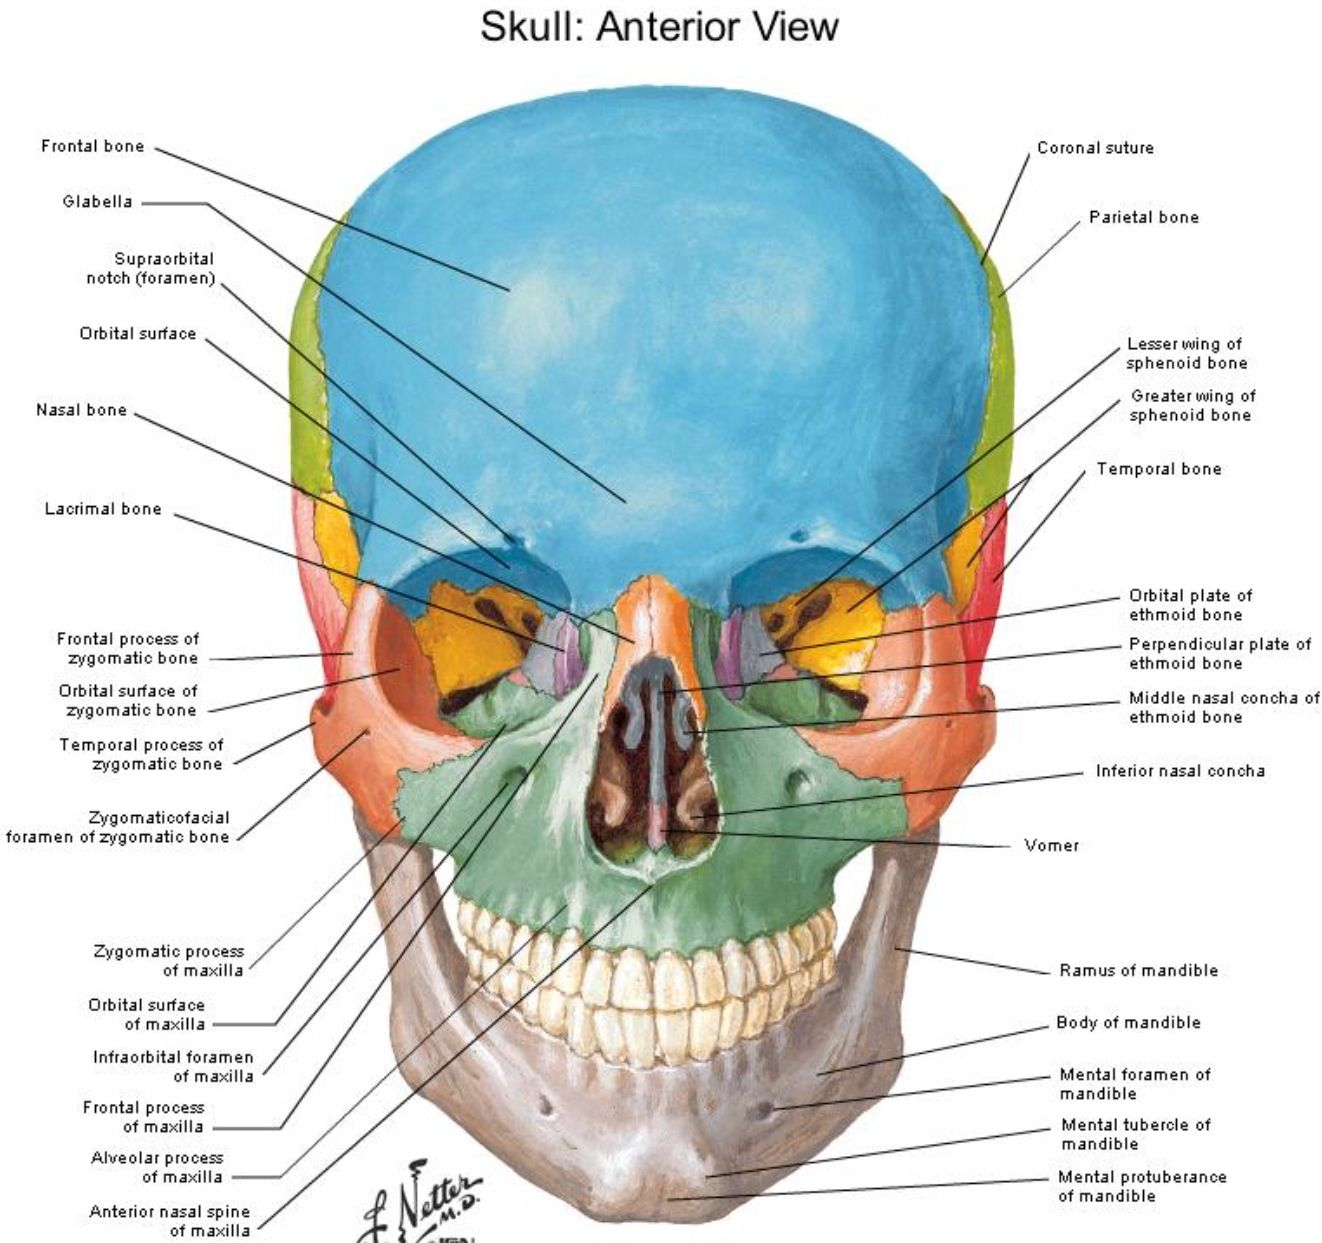 anterior view skull netter anatomy craniosacral. Black Bedroom Furniture Sets. Home Design Ideas